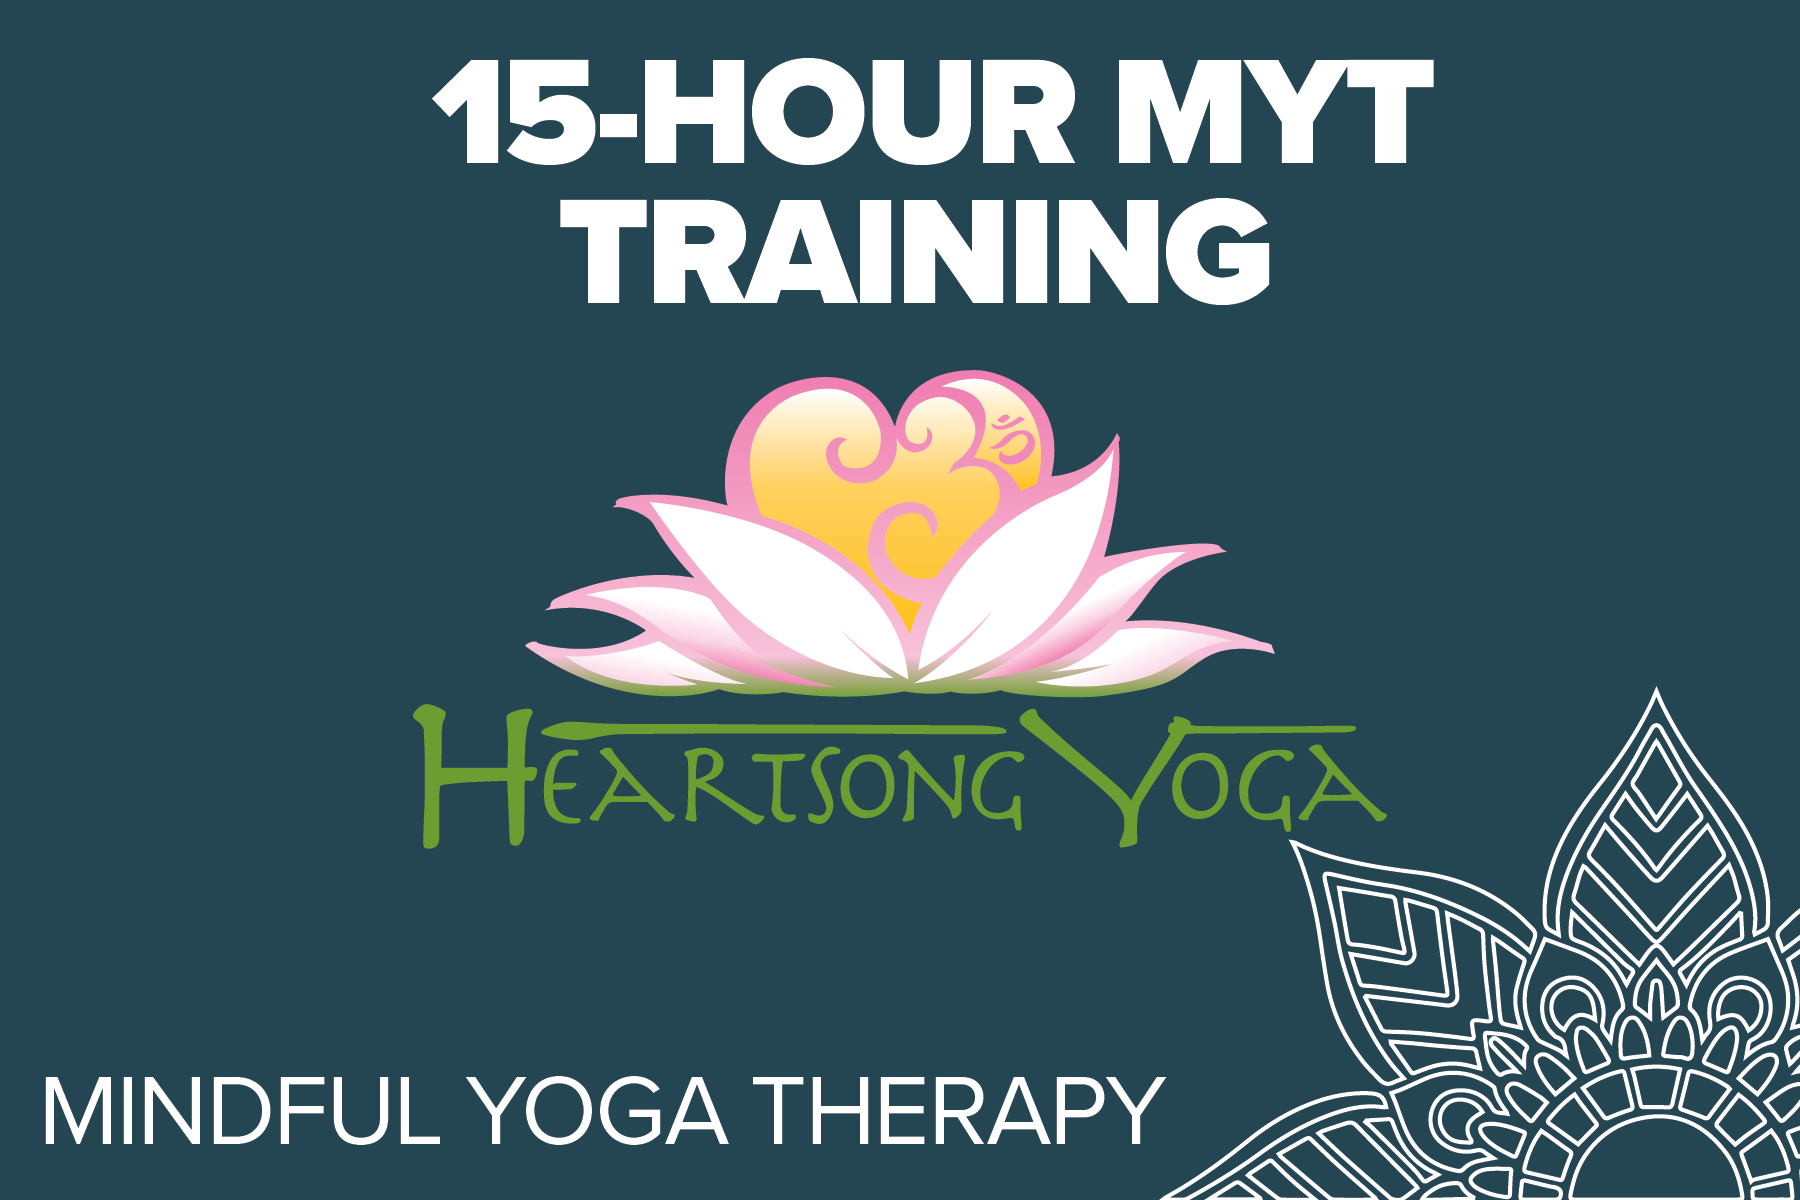 Heartsong Yoga - Mindful Yoga Therapy is an empirically informed, clinically tested program comprised of five practices: Pranayama (breathing), Asana (postures connected with breath), Yoga Nidra, Meditation, and Gratitude.